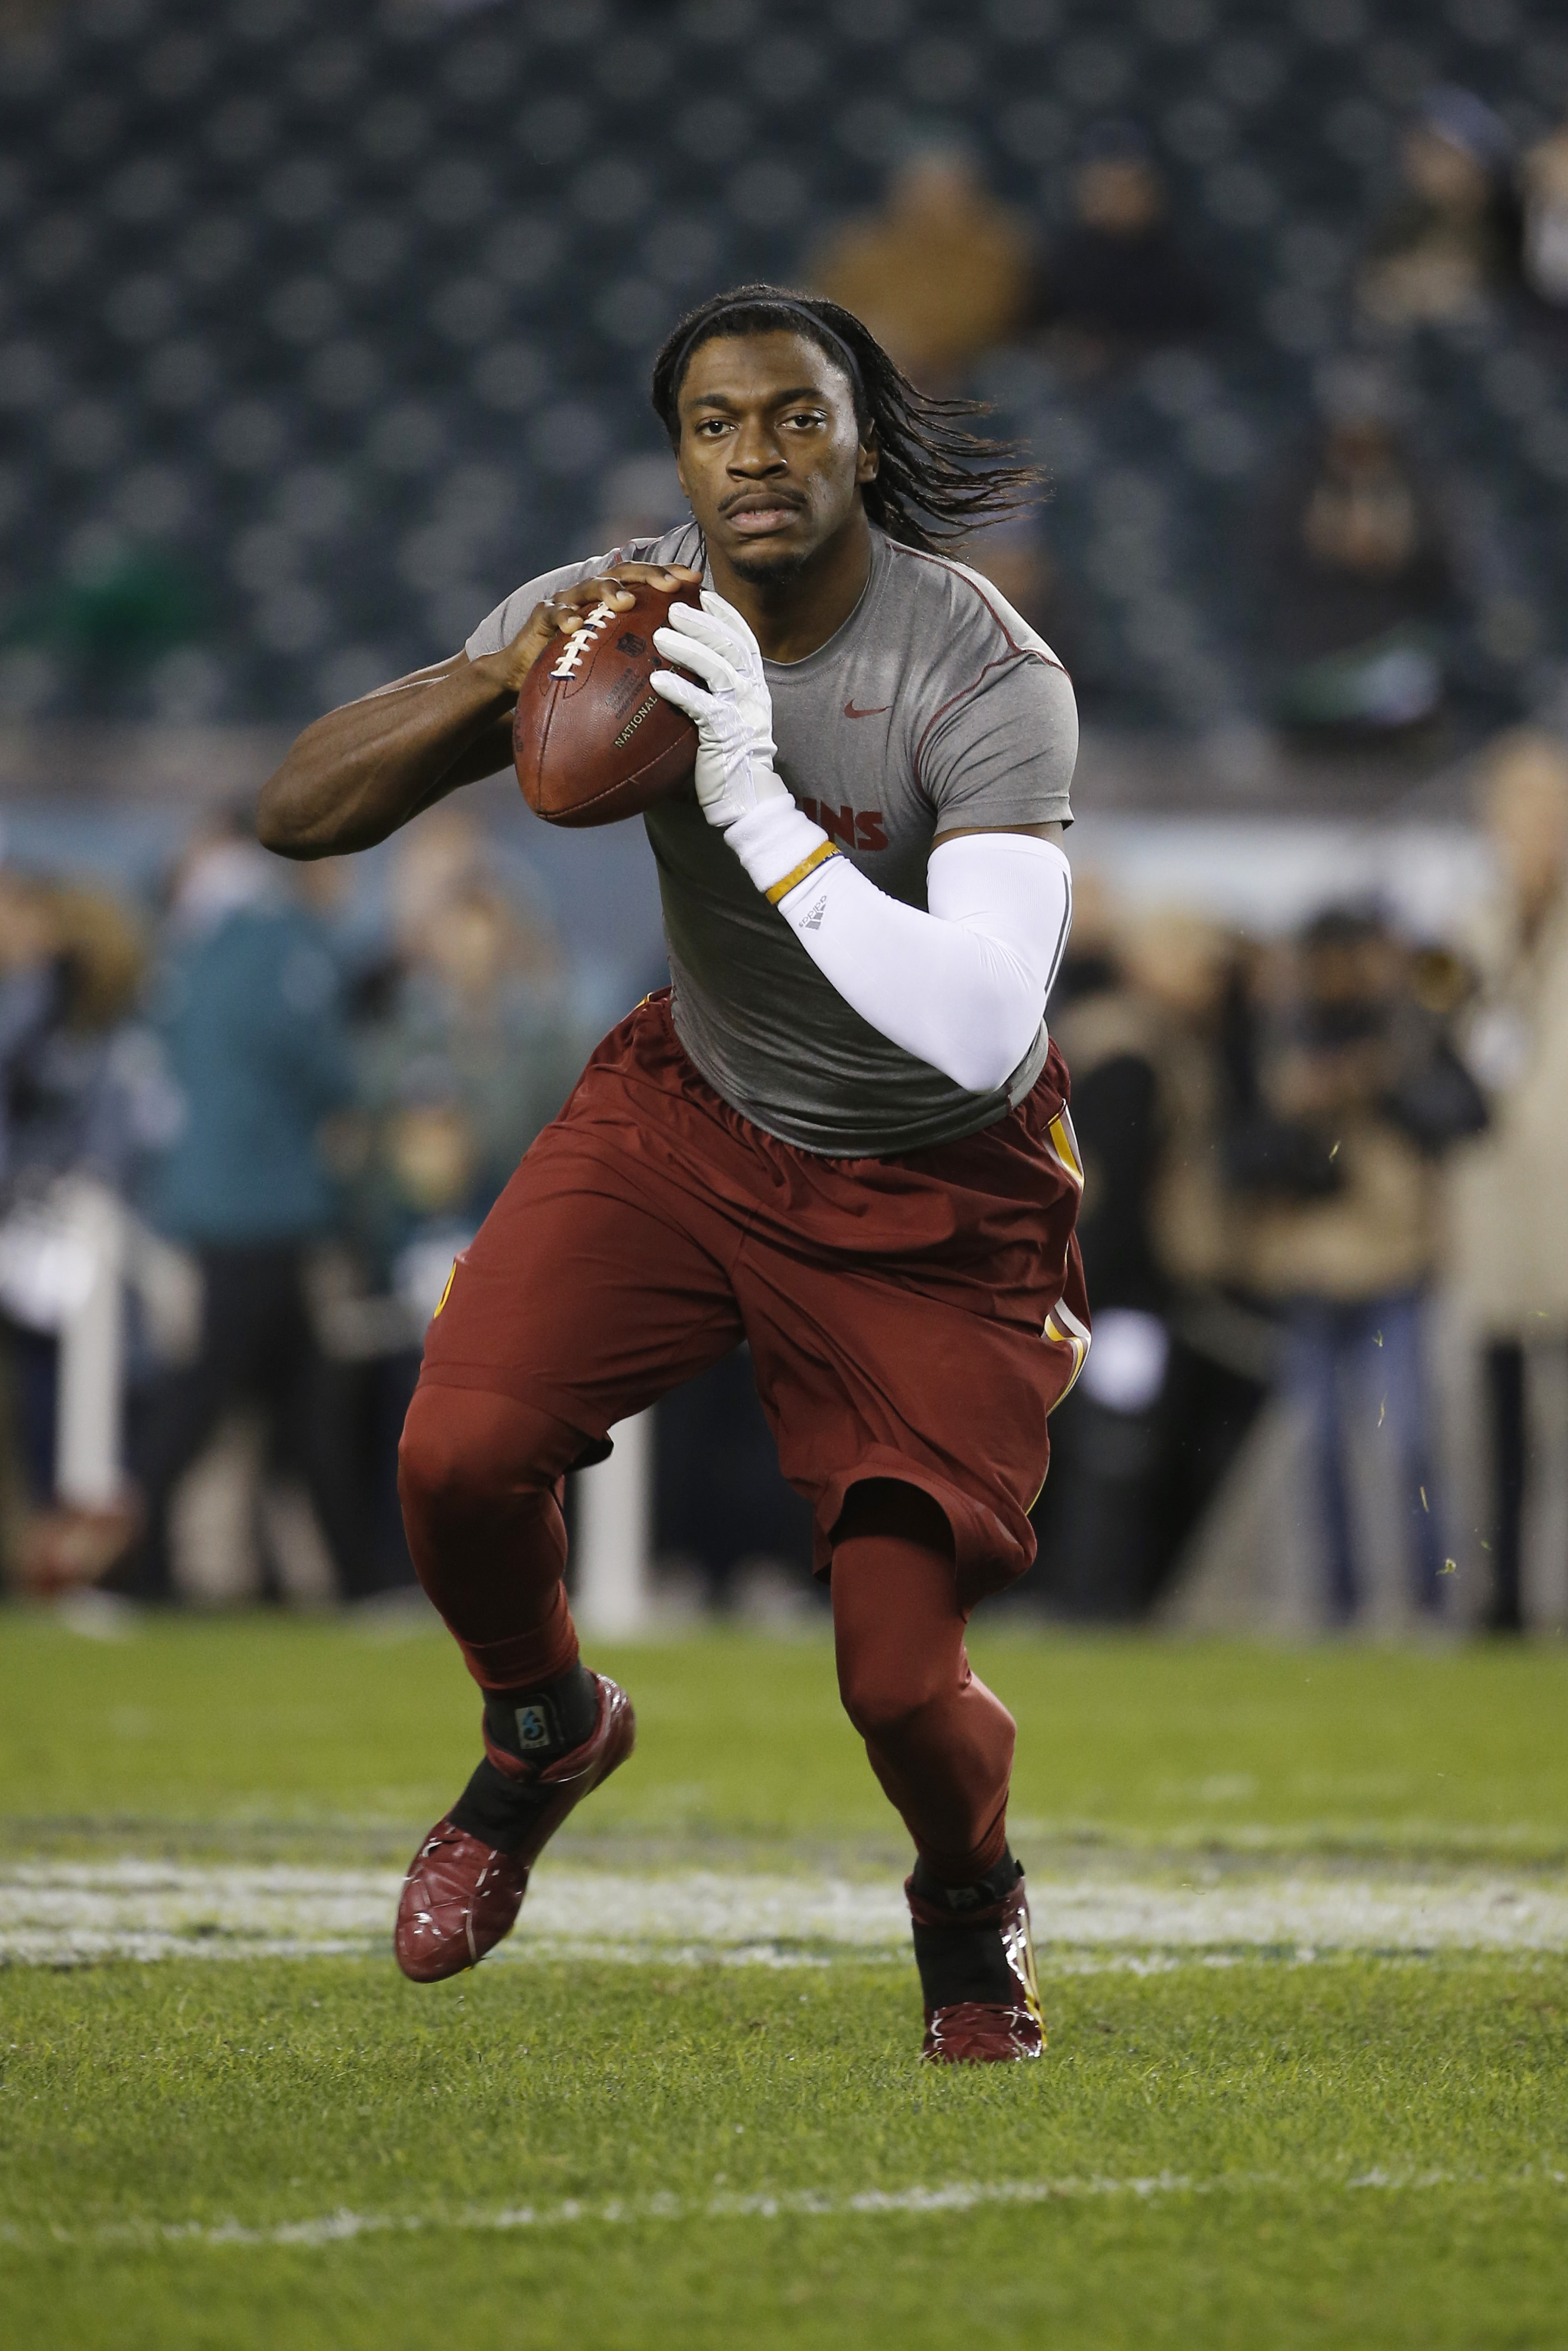 FILE - In this Dec. 26, 2015, file photo, Washington Redskins' Robert Griffin III warms up before an NFL football game against the Philadelphia Eagles, in Philadelphia. Cleveland's never-ending search for a franchise quarterback could come down to a compe